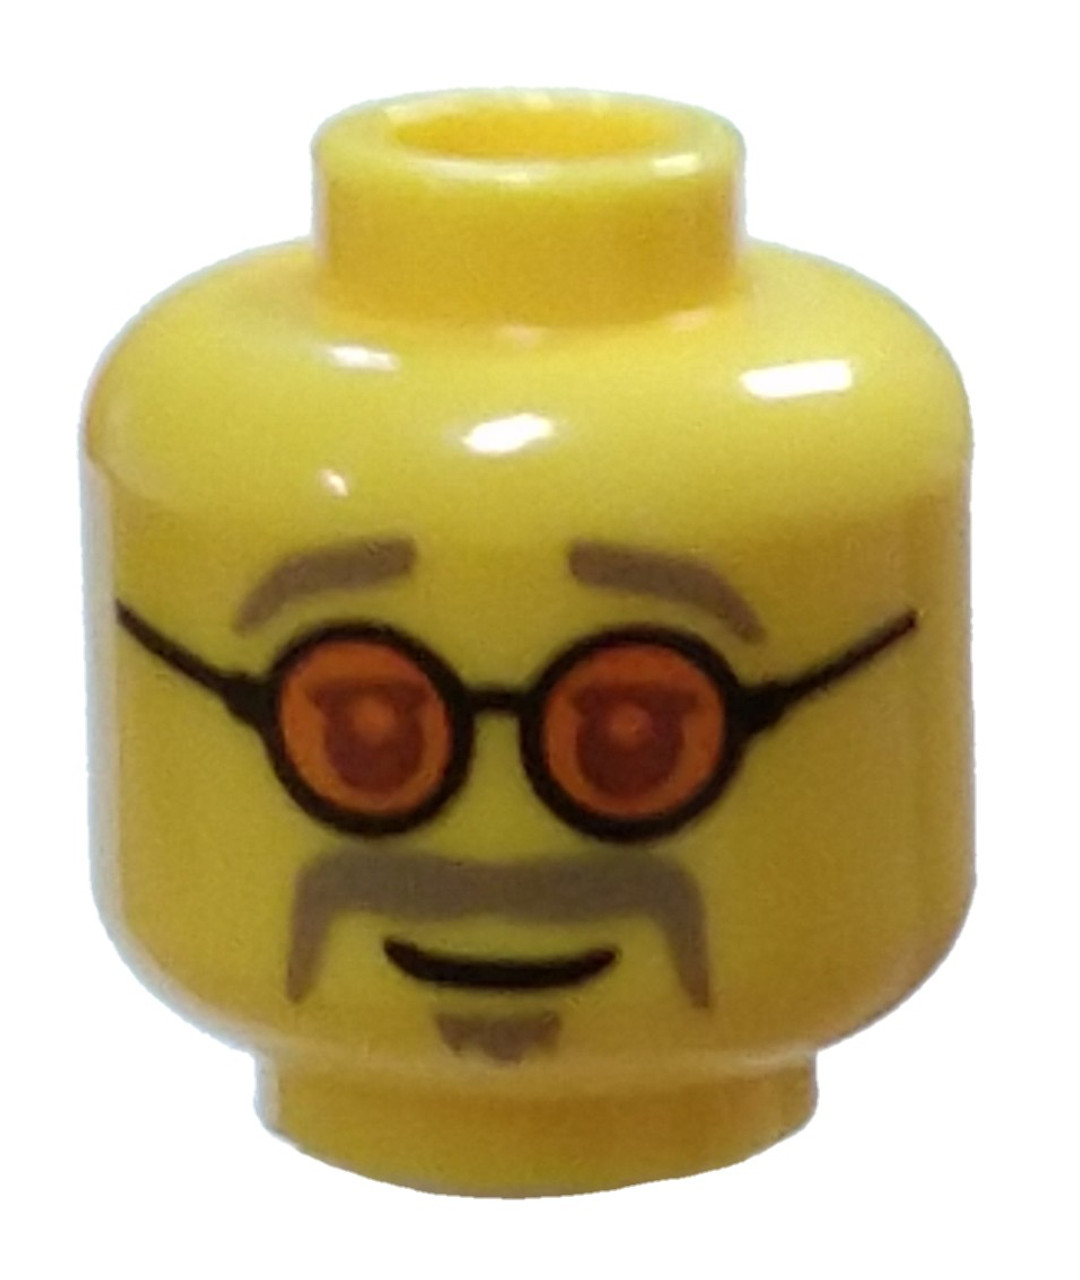 Lego New Yellow Minifigure Head Moustache Dark Tan Thin Goatee Wide Smile